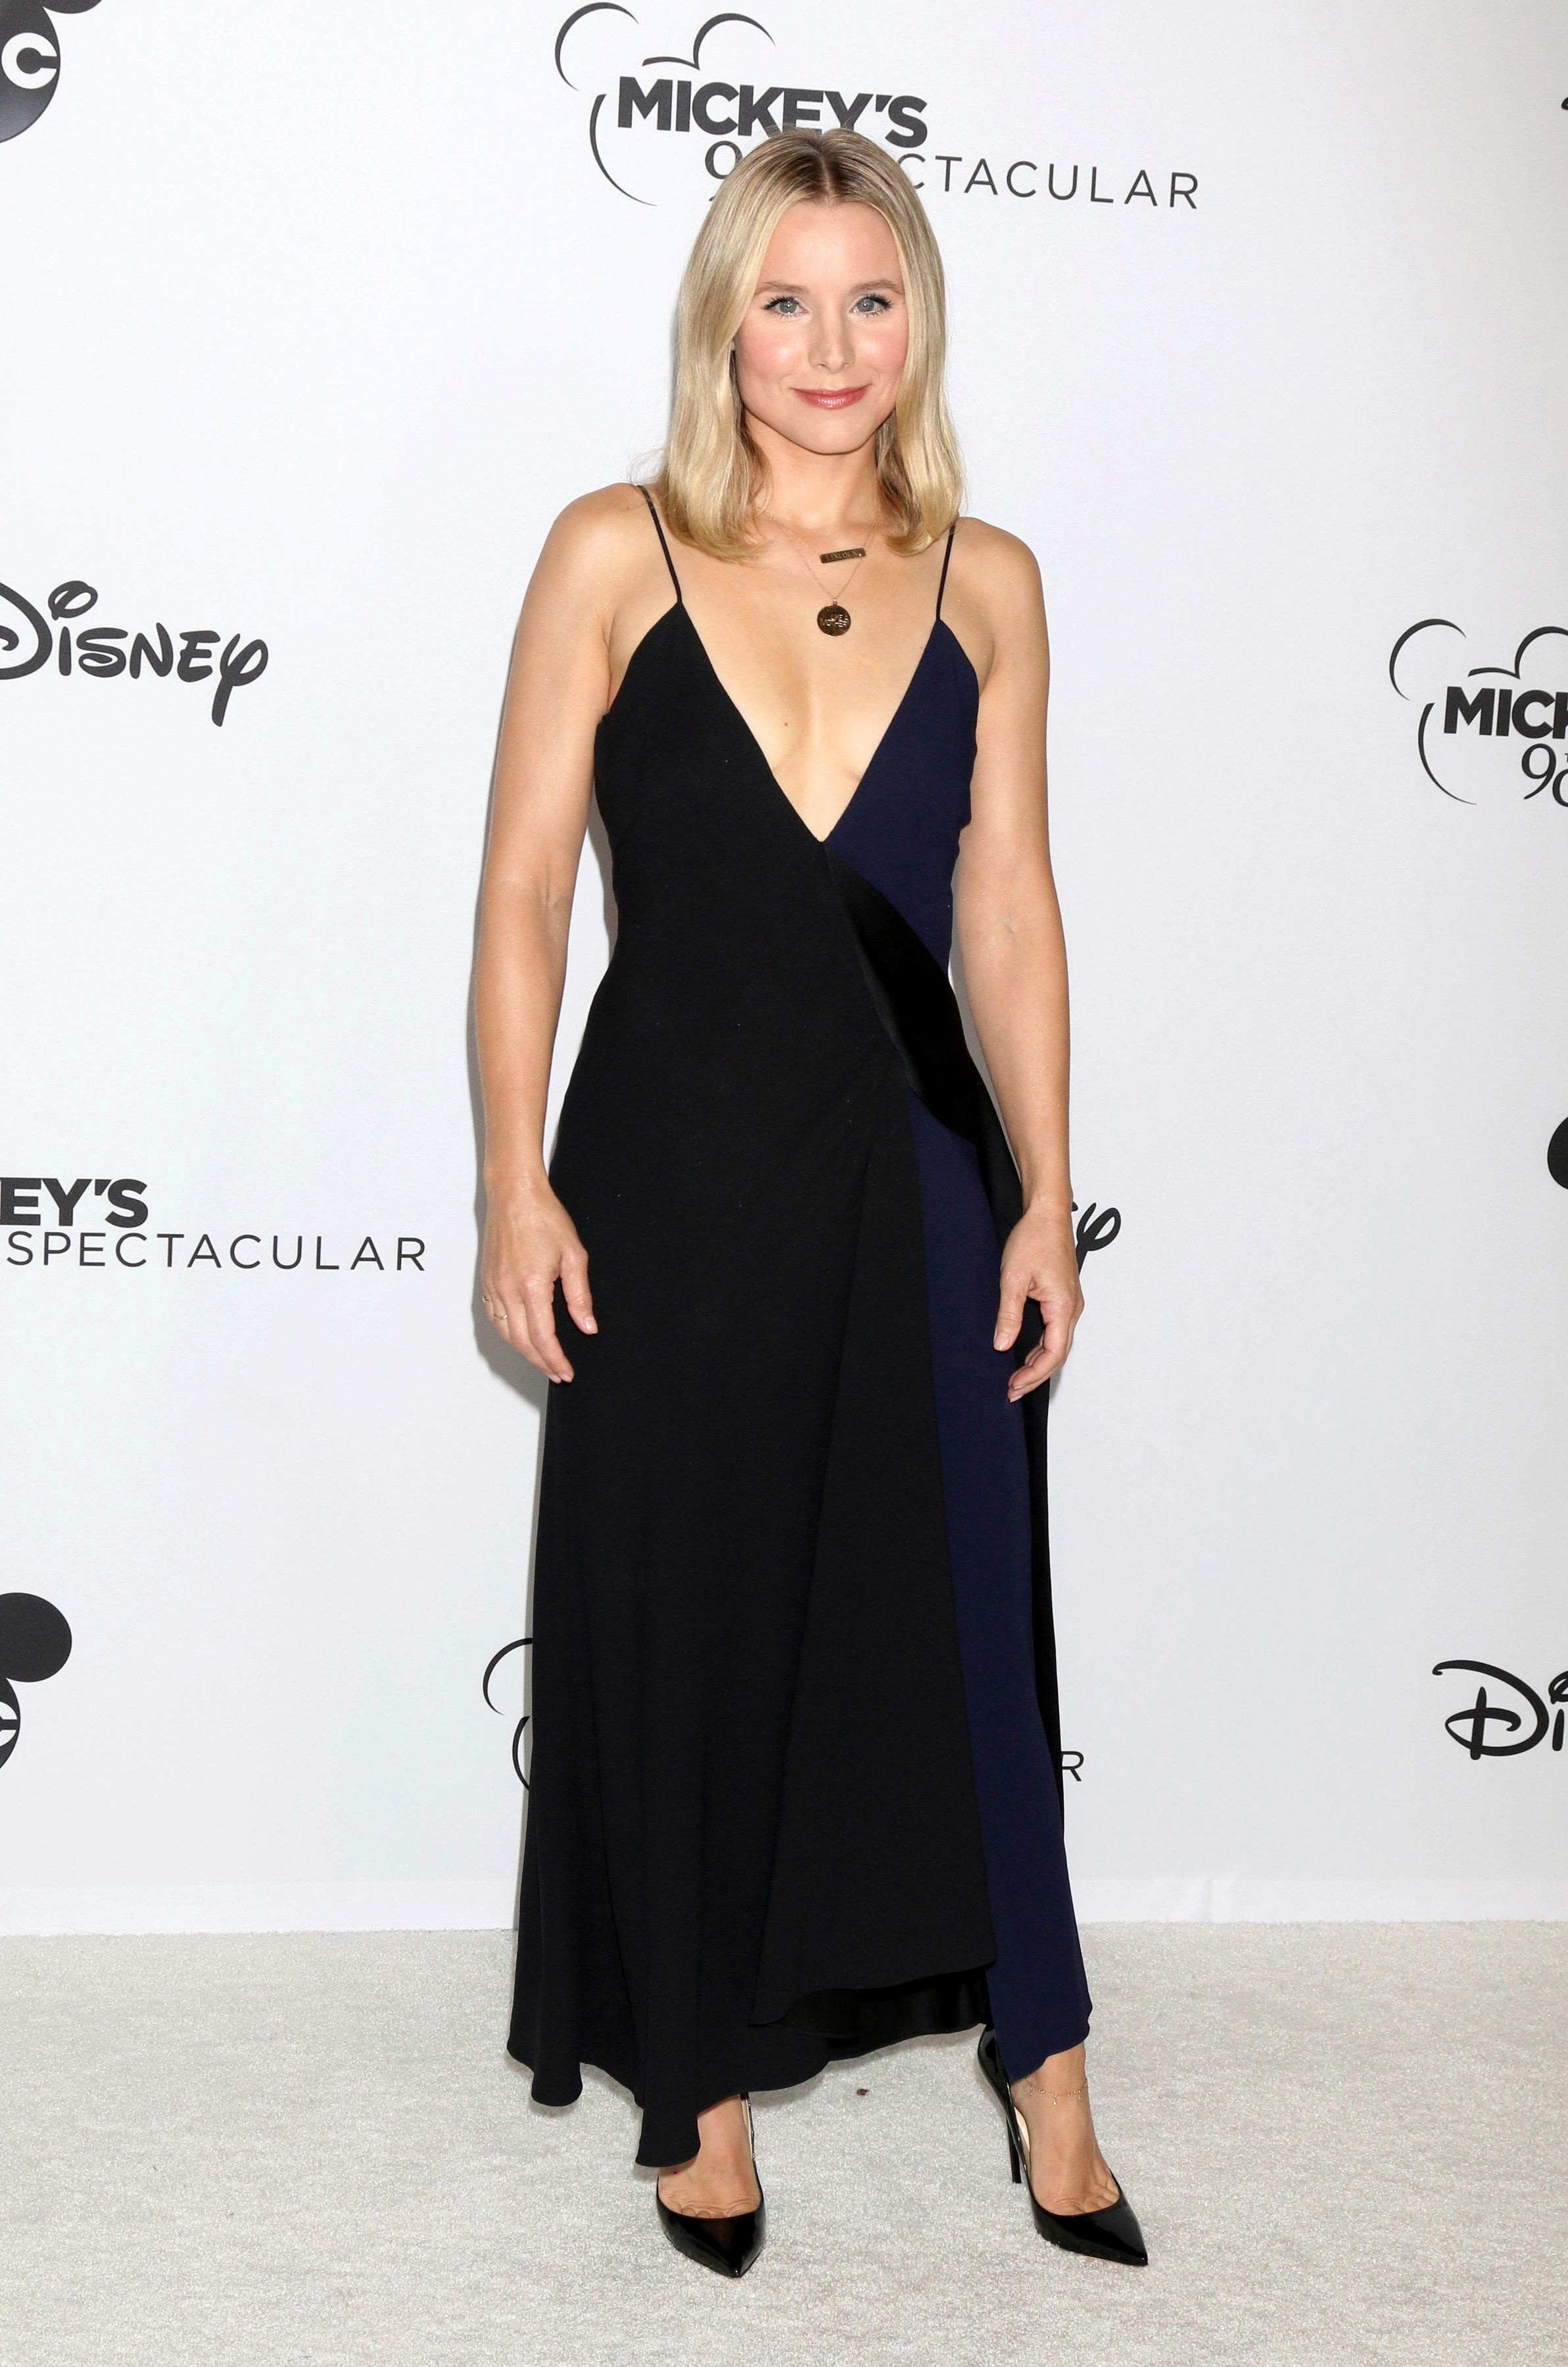 LOS ANGELES, CA - OCTOBER 6: Kristen Bell at the Mickey's 90th Spectacular at the Shrine Auditorium in Los Angeles, California on October 6, 2018. Credit: David Edwards/MediaPunch /IPX